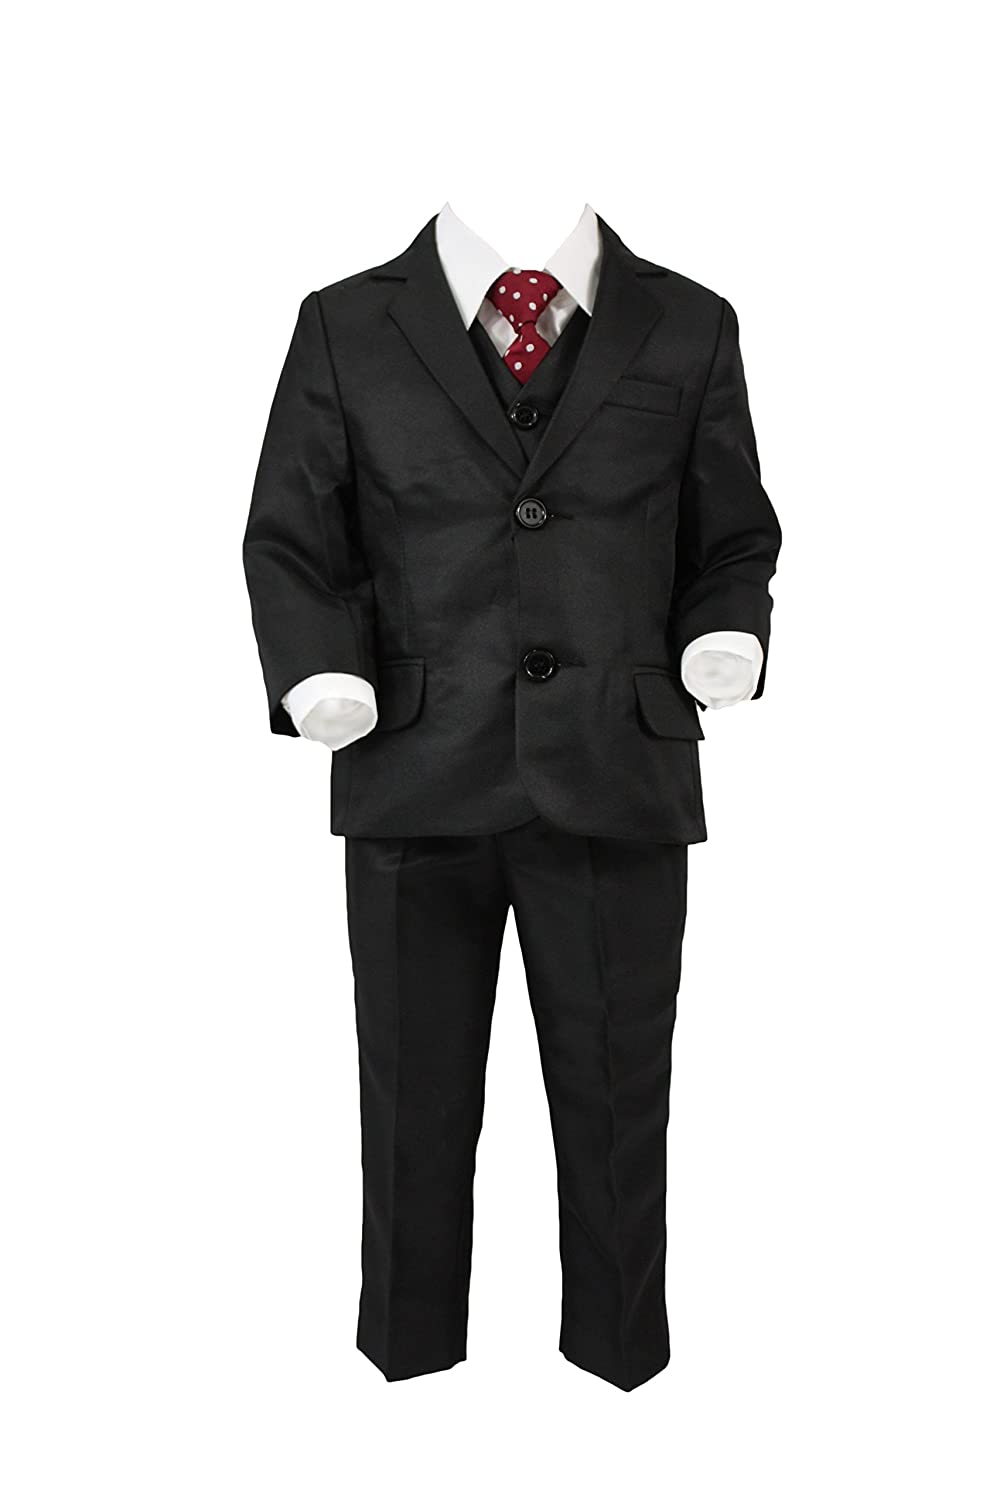 Boys Wedding Black Suit, Proms, Cruises & Party's 6 months - 15 years